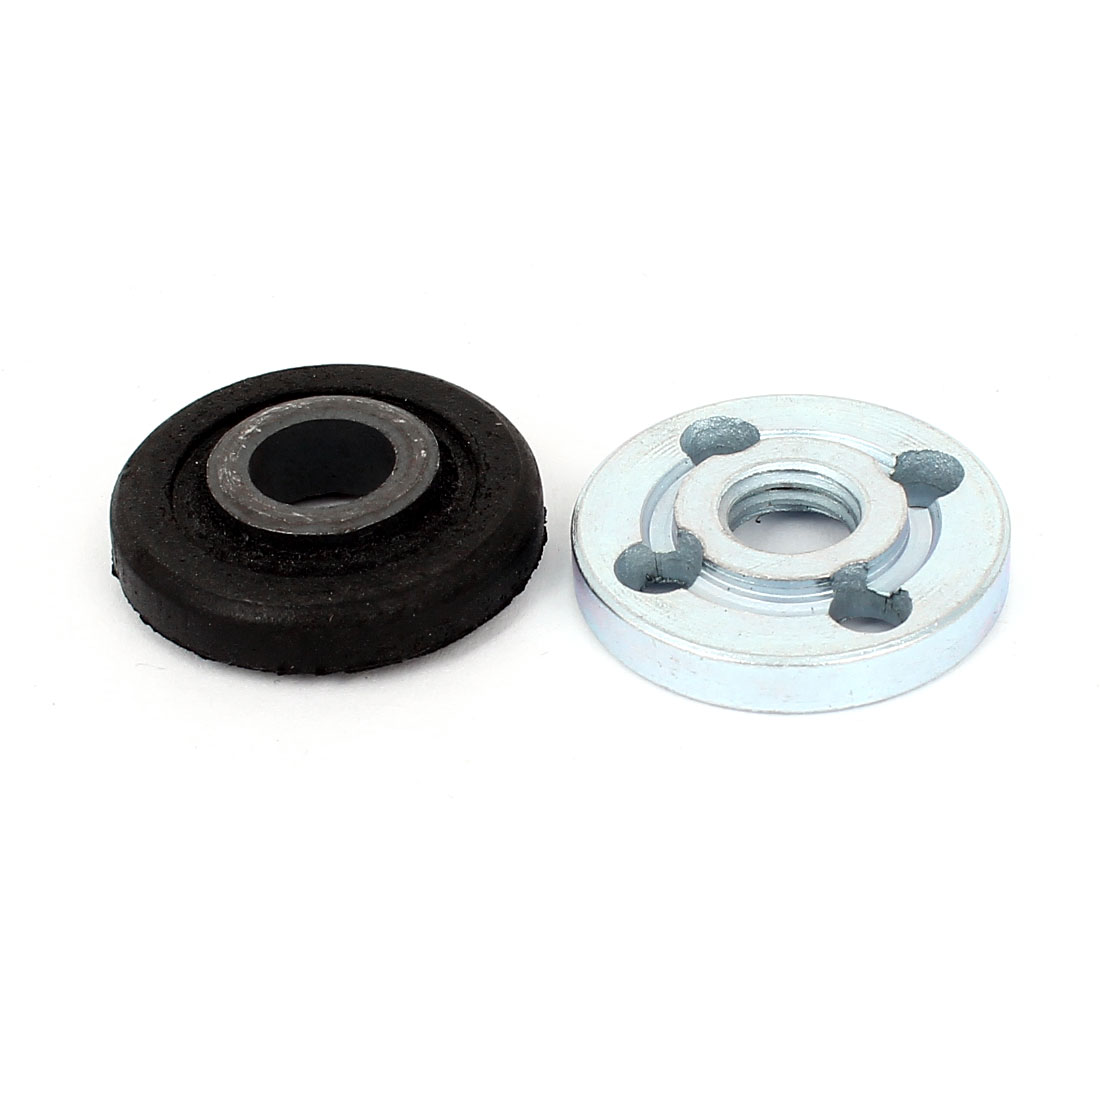 Pair Round Clamp Inner Outer Nuts Flange Fixing for Bosch Angle Grinder